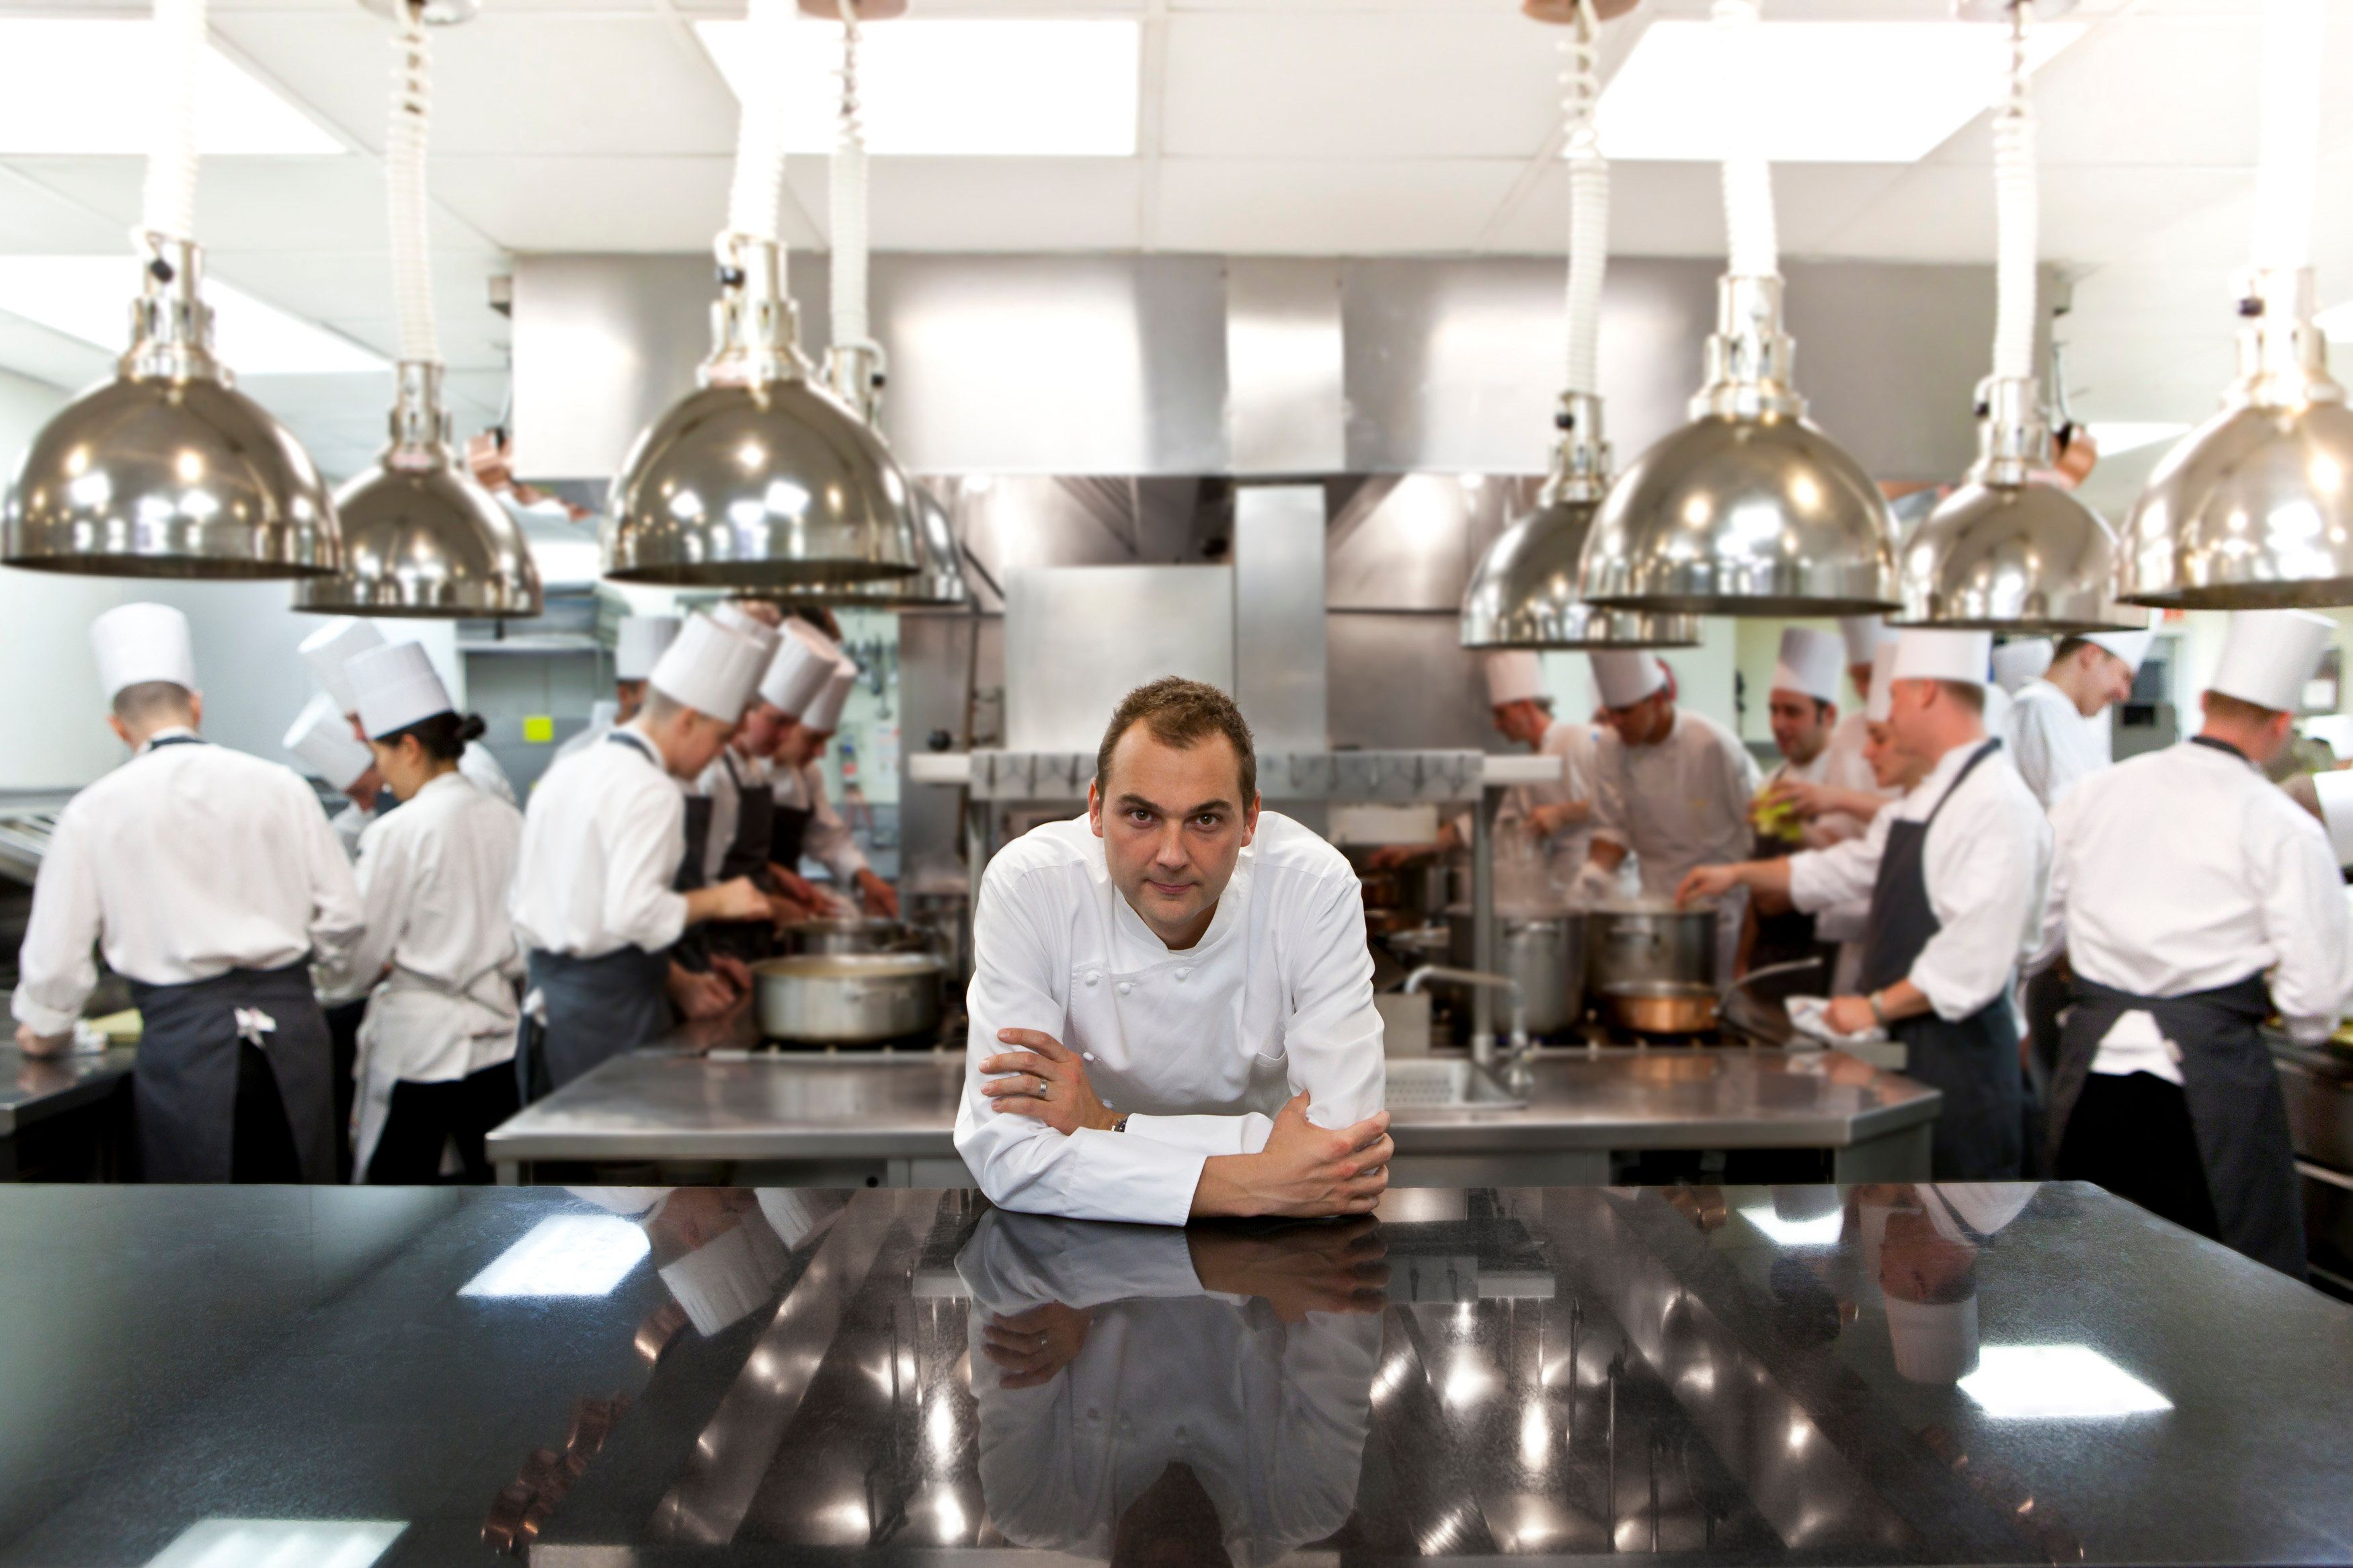 Chef Daniel Humm in the kitchen of Eleven Madison Park in New York.